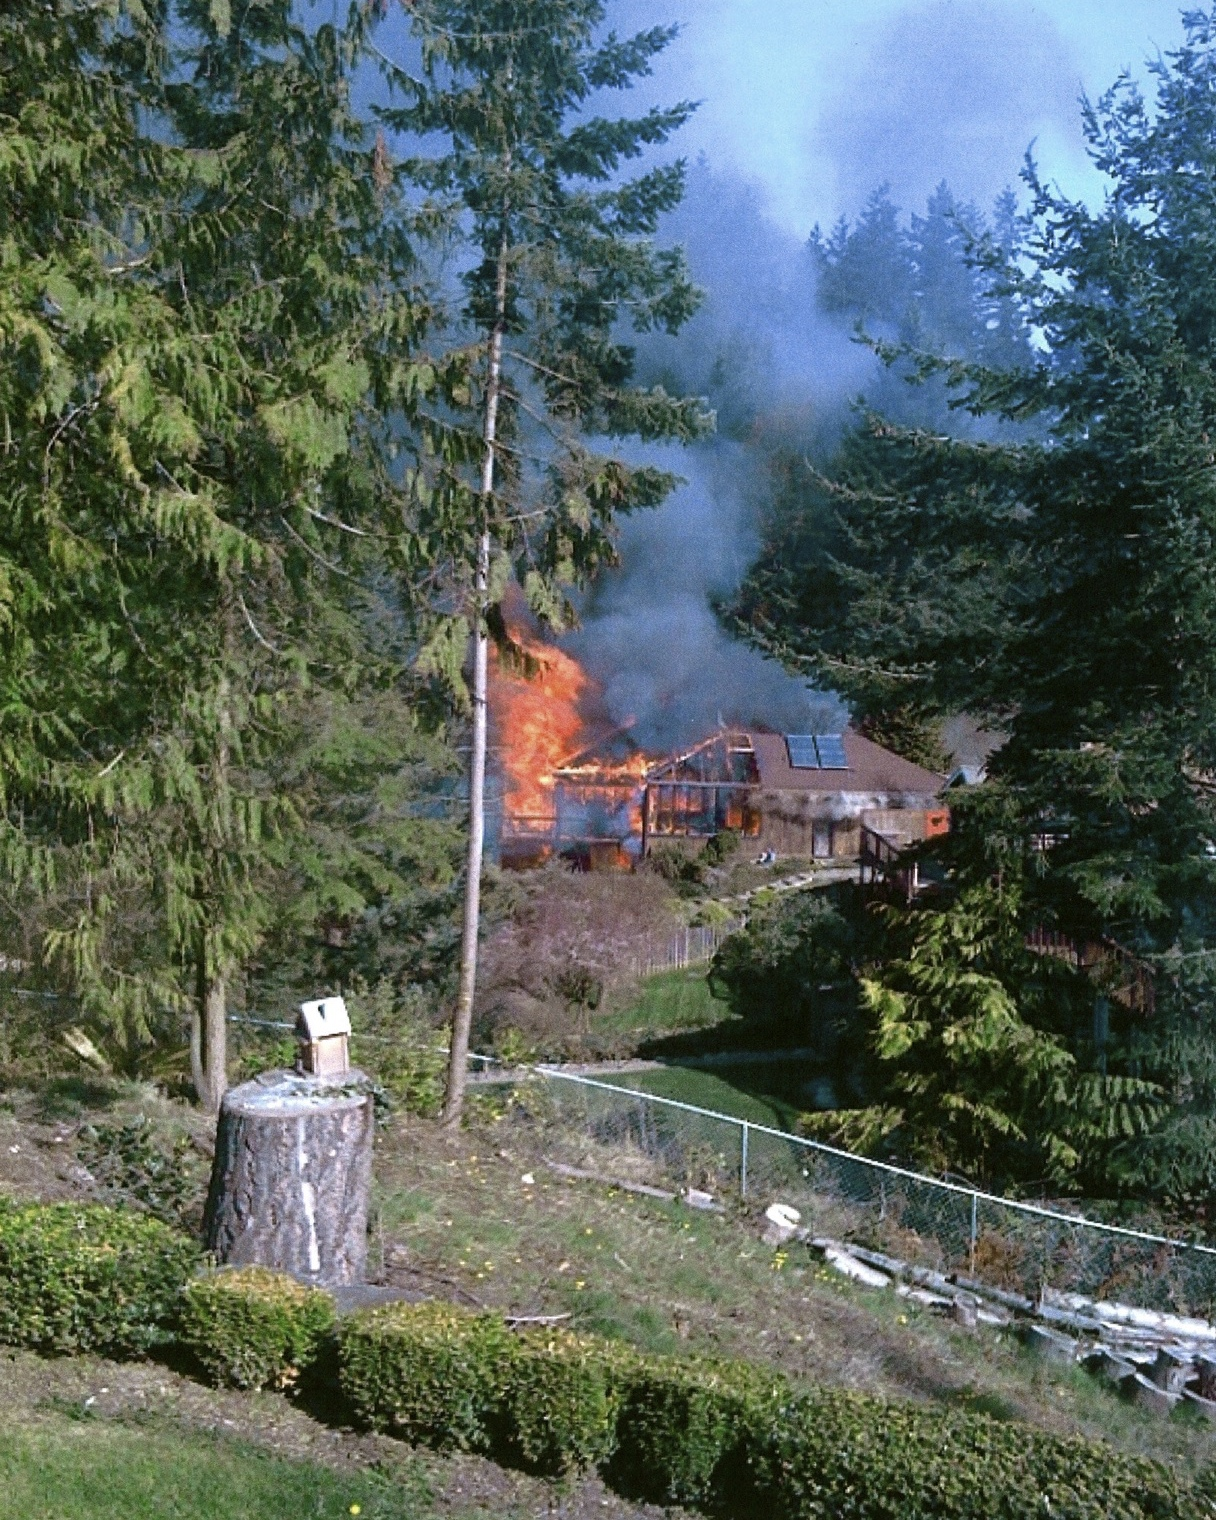 Fire! Our house in flames, Edmonds, WA. Saturday 20 March 2010. Photo by Unknown.